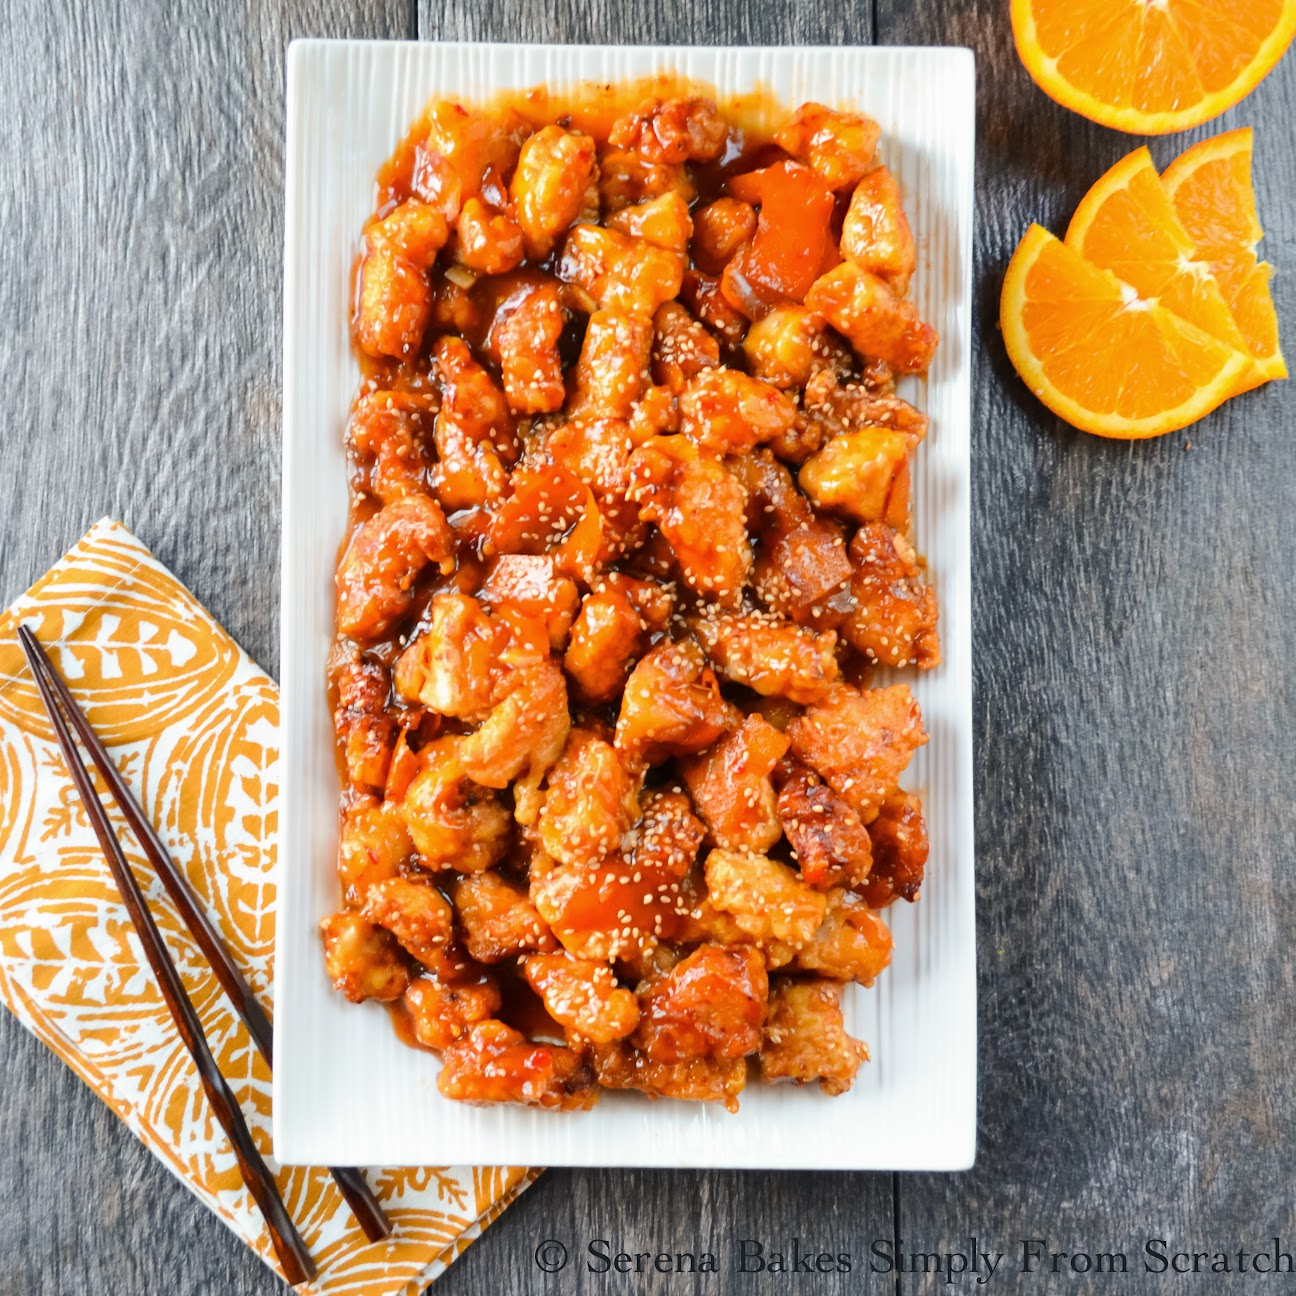 Chinese orange peel chicken gluten free serena bakes simply from chinese orange peel chicken is so much more flavorful then what most restaurants serve you might not go out for chinese food again forumfinder Image collections